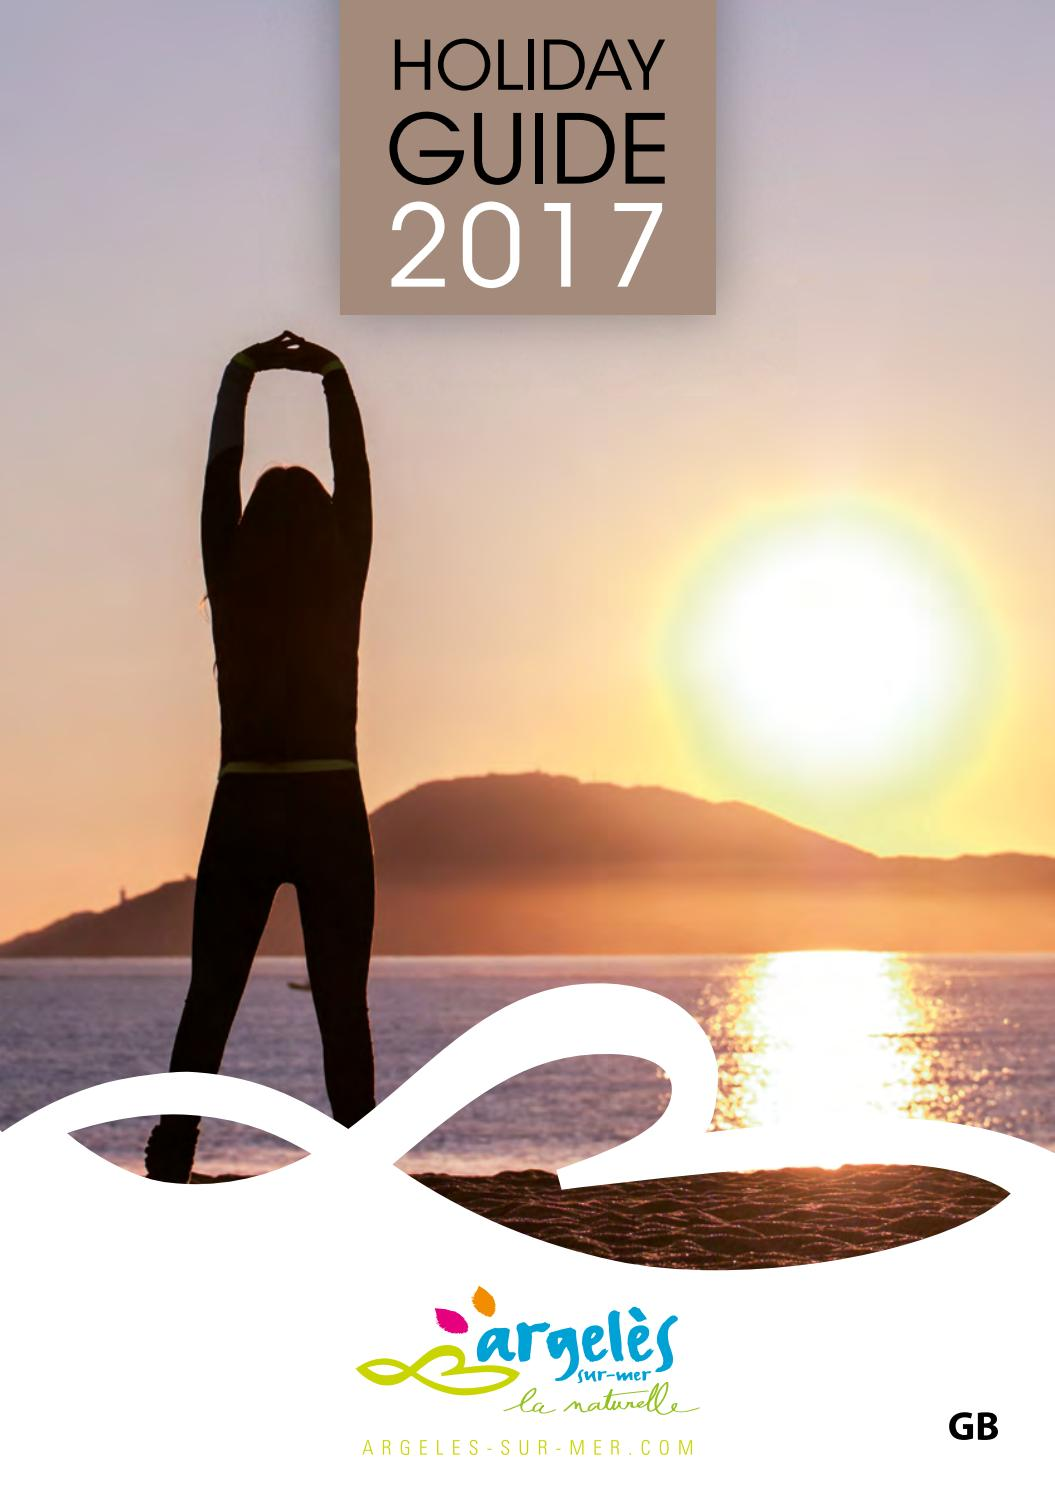 Holiday Guide Argeles Gb 2017 By Argelès Sur Mer Issuu